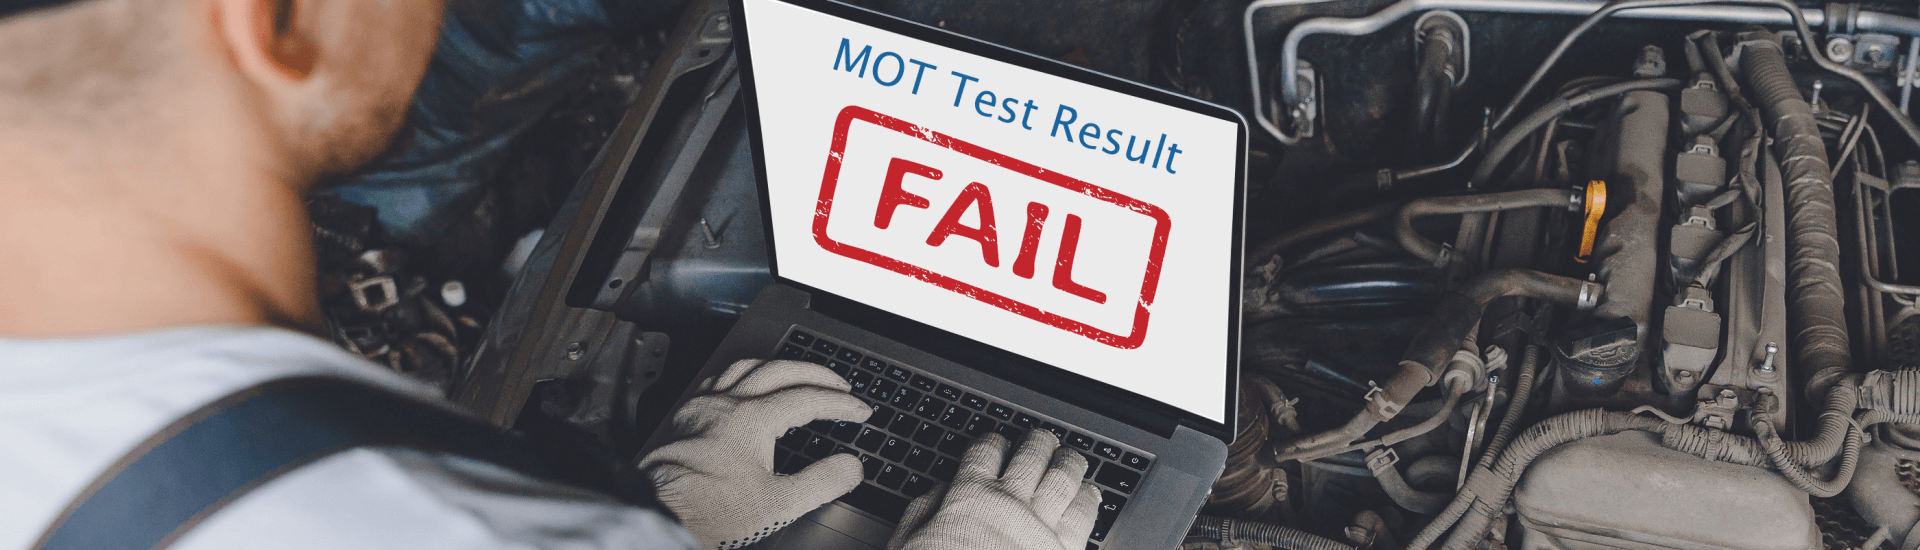 MOT Test Failure